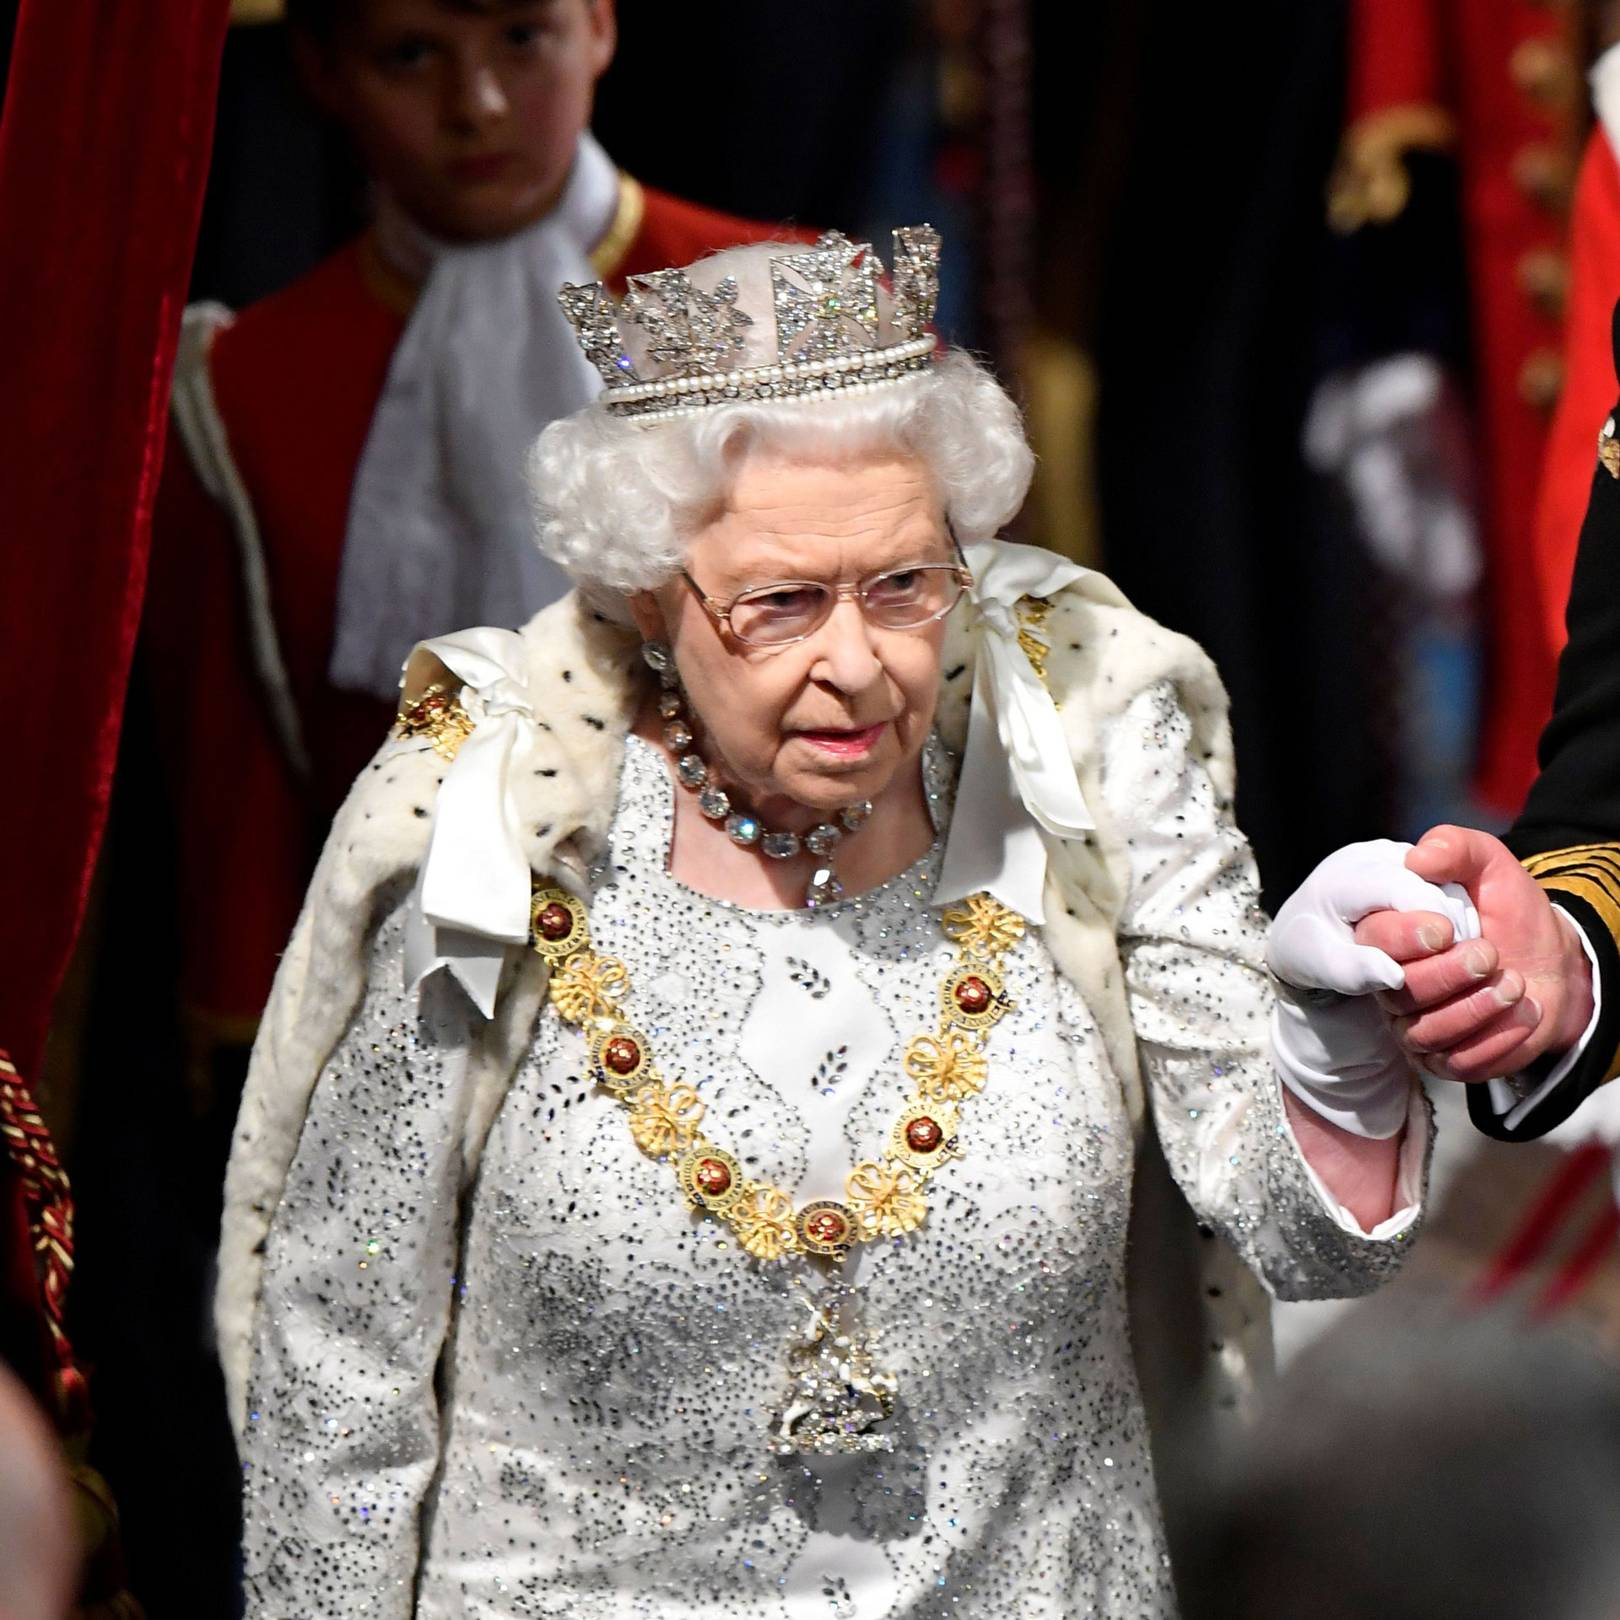 Why the Queen eschewed tradition by wearing the George IV diadem to open Parliament